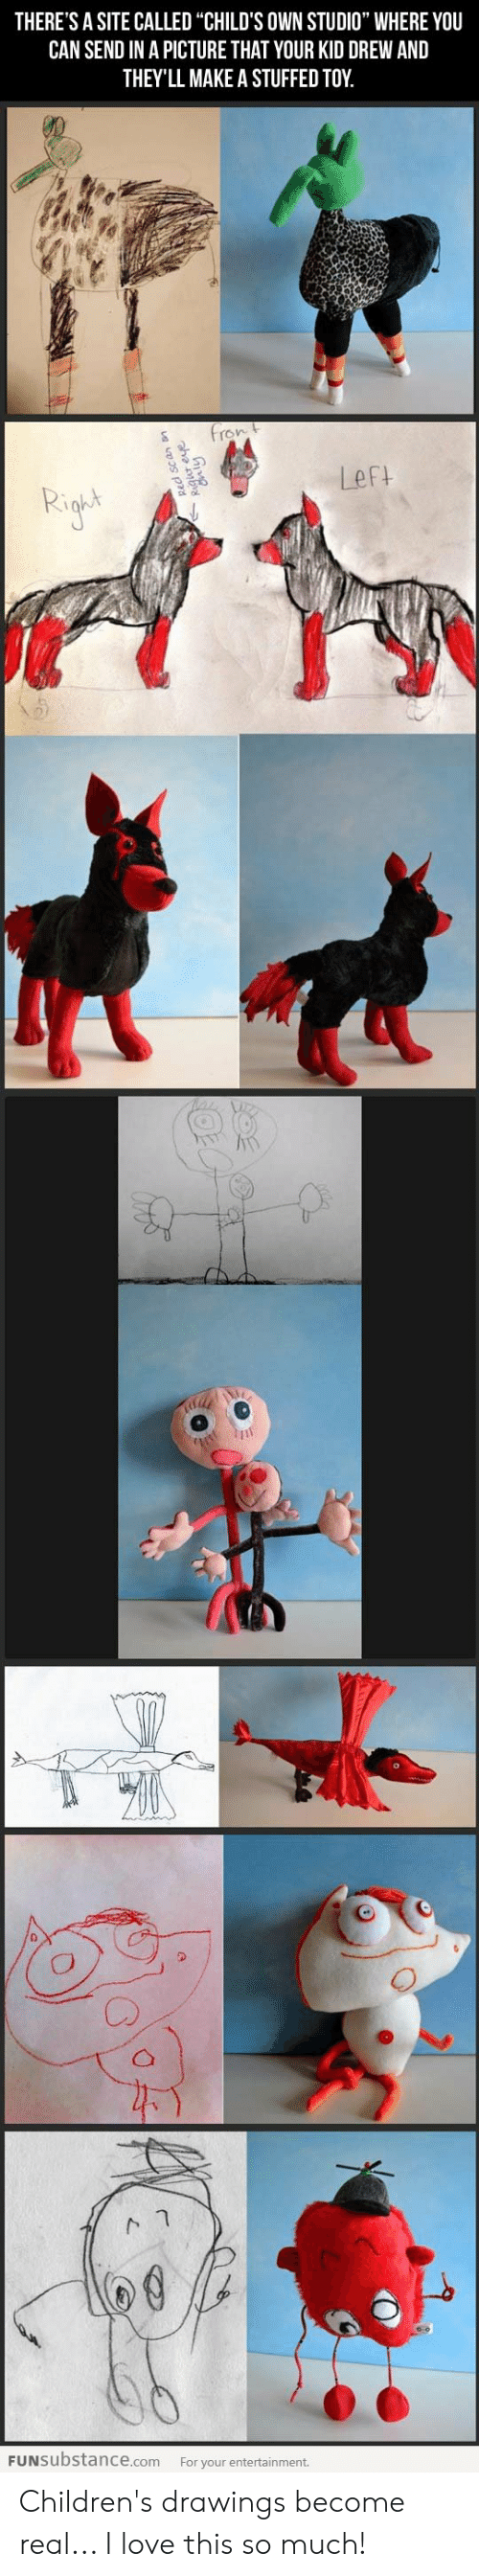 """Love, Drawings, and A Picture: THERE'S A SITE CALLED """"CHILD'S OWN STUDIO"""" WHERE YOU  CAN SEND IN A PICTURE THAT YOUR KID DREW AND  THEY'LL MAKE A STUFFED TOY  fron t  Left  FUNSUbstance.com  For your entertainment.  qur eve  Cnly Children's drawings become real... I love this so much!"""